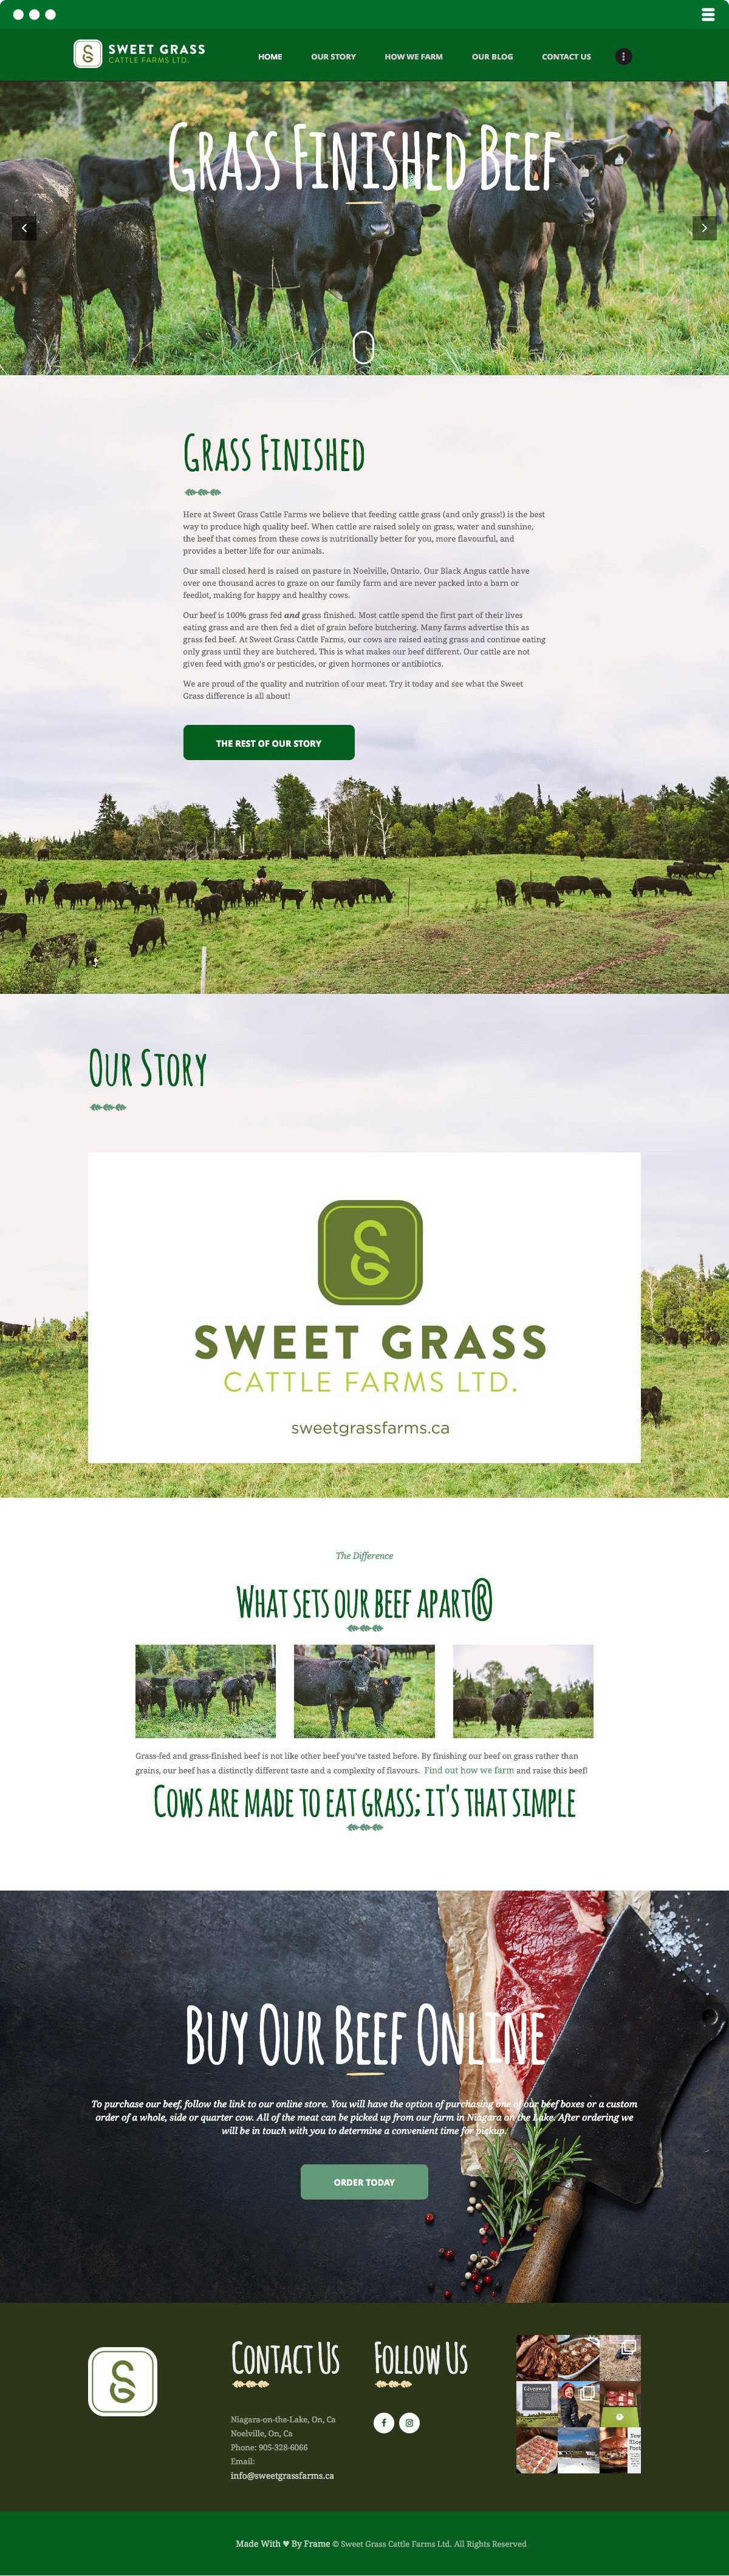 Sweet Grass Cattle Farm Website Made by Frame